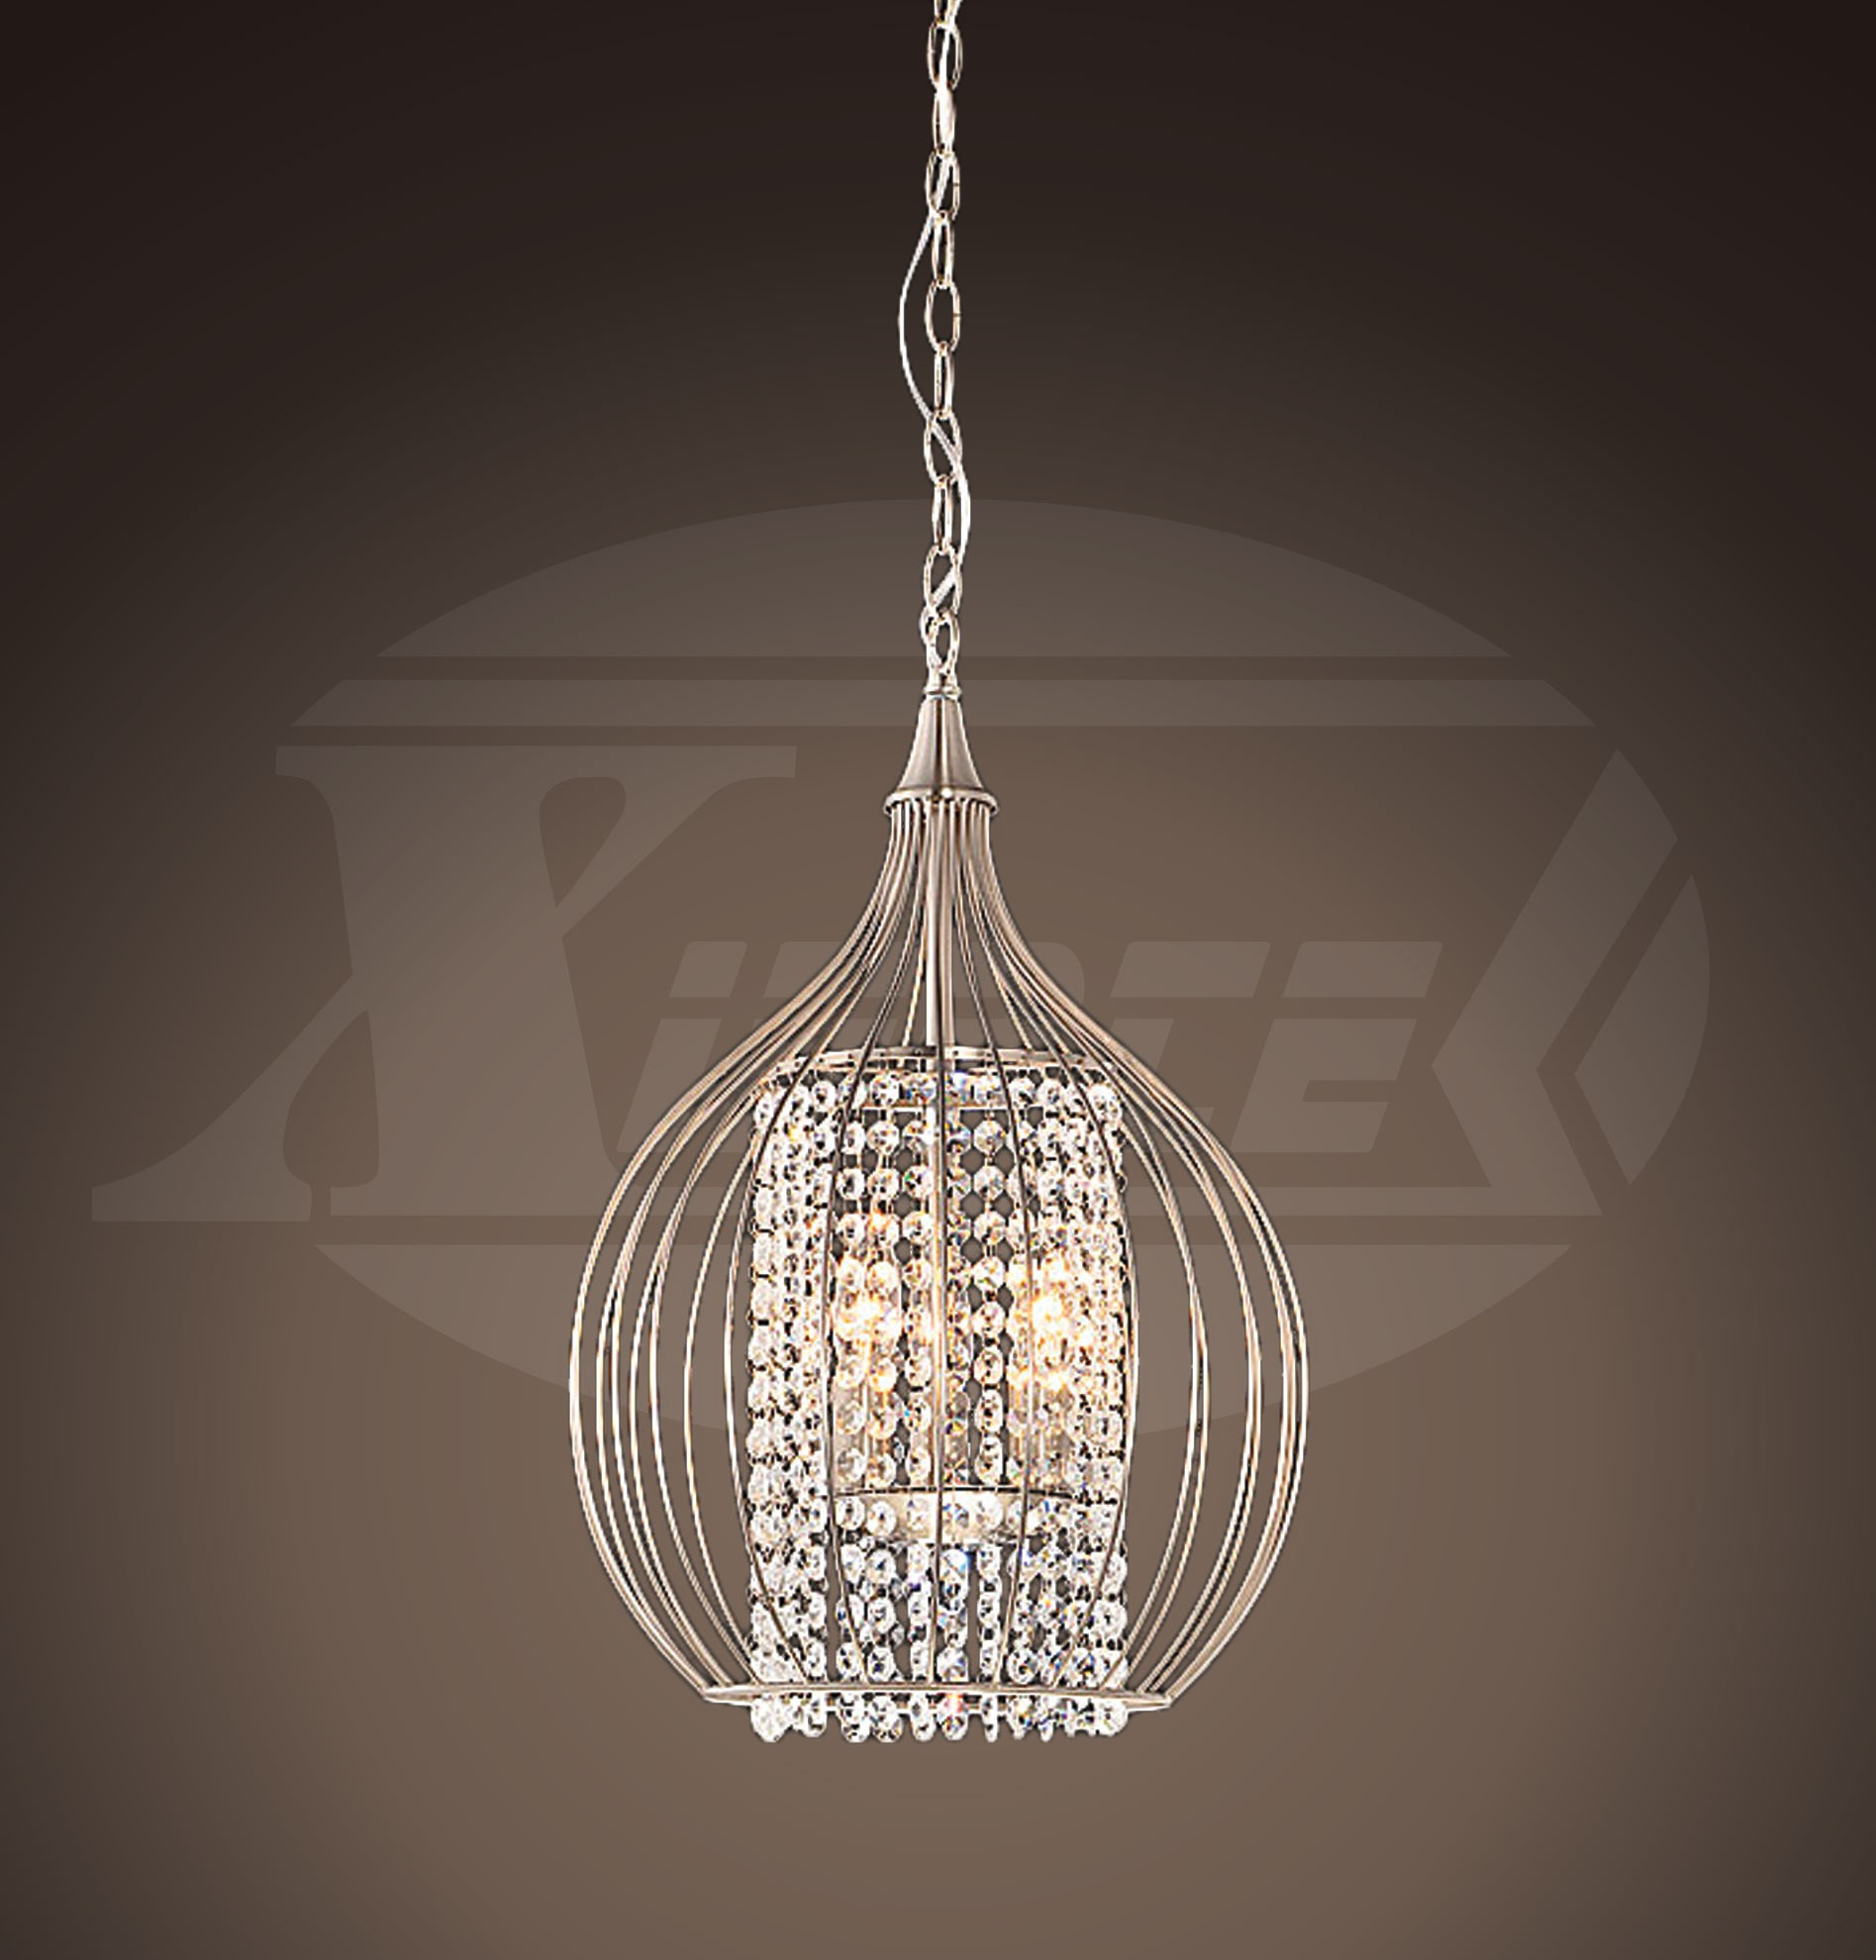 itm glass lamp is chandelier stained ceiling fixture loading light pendant luxury tiffany image